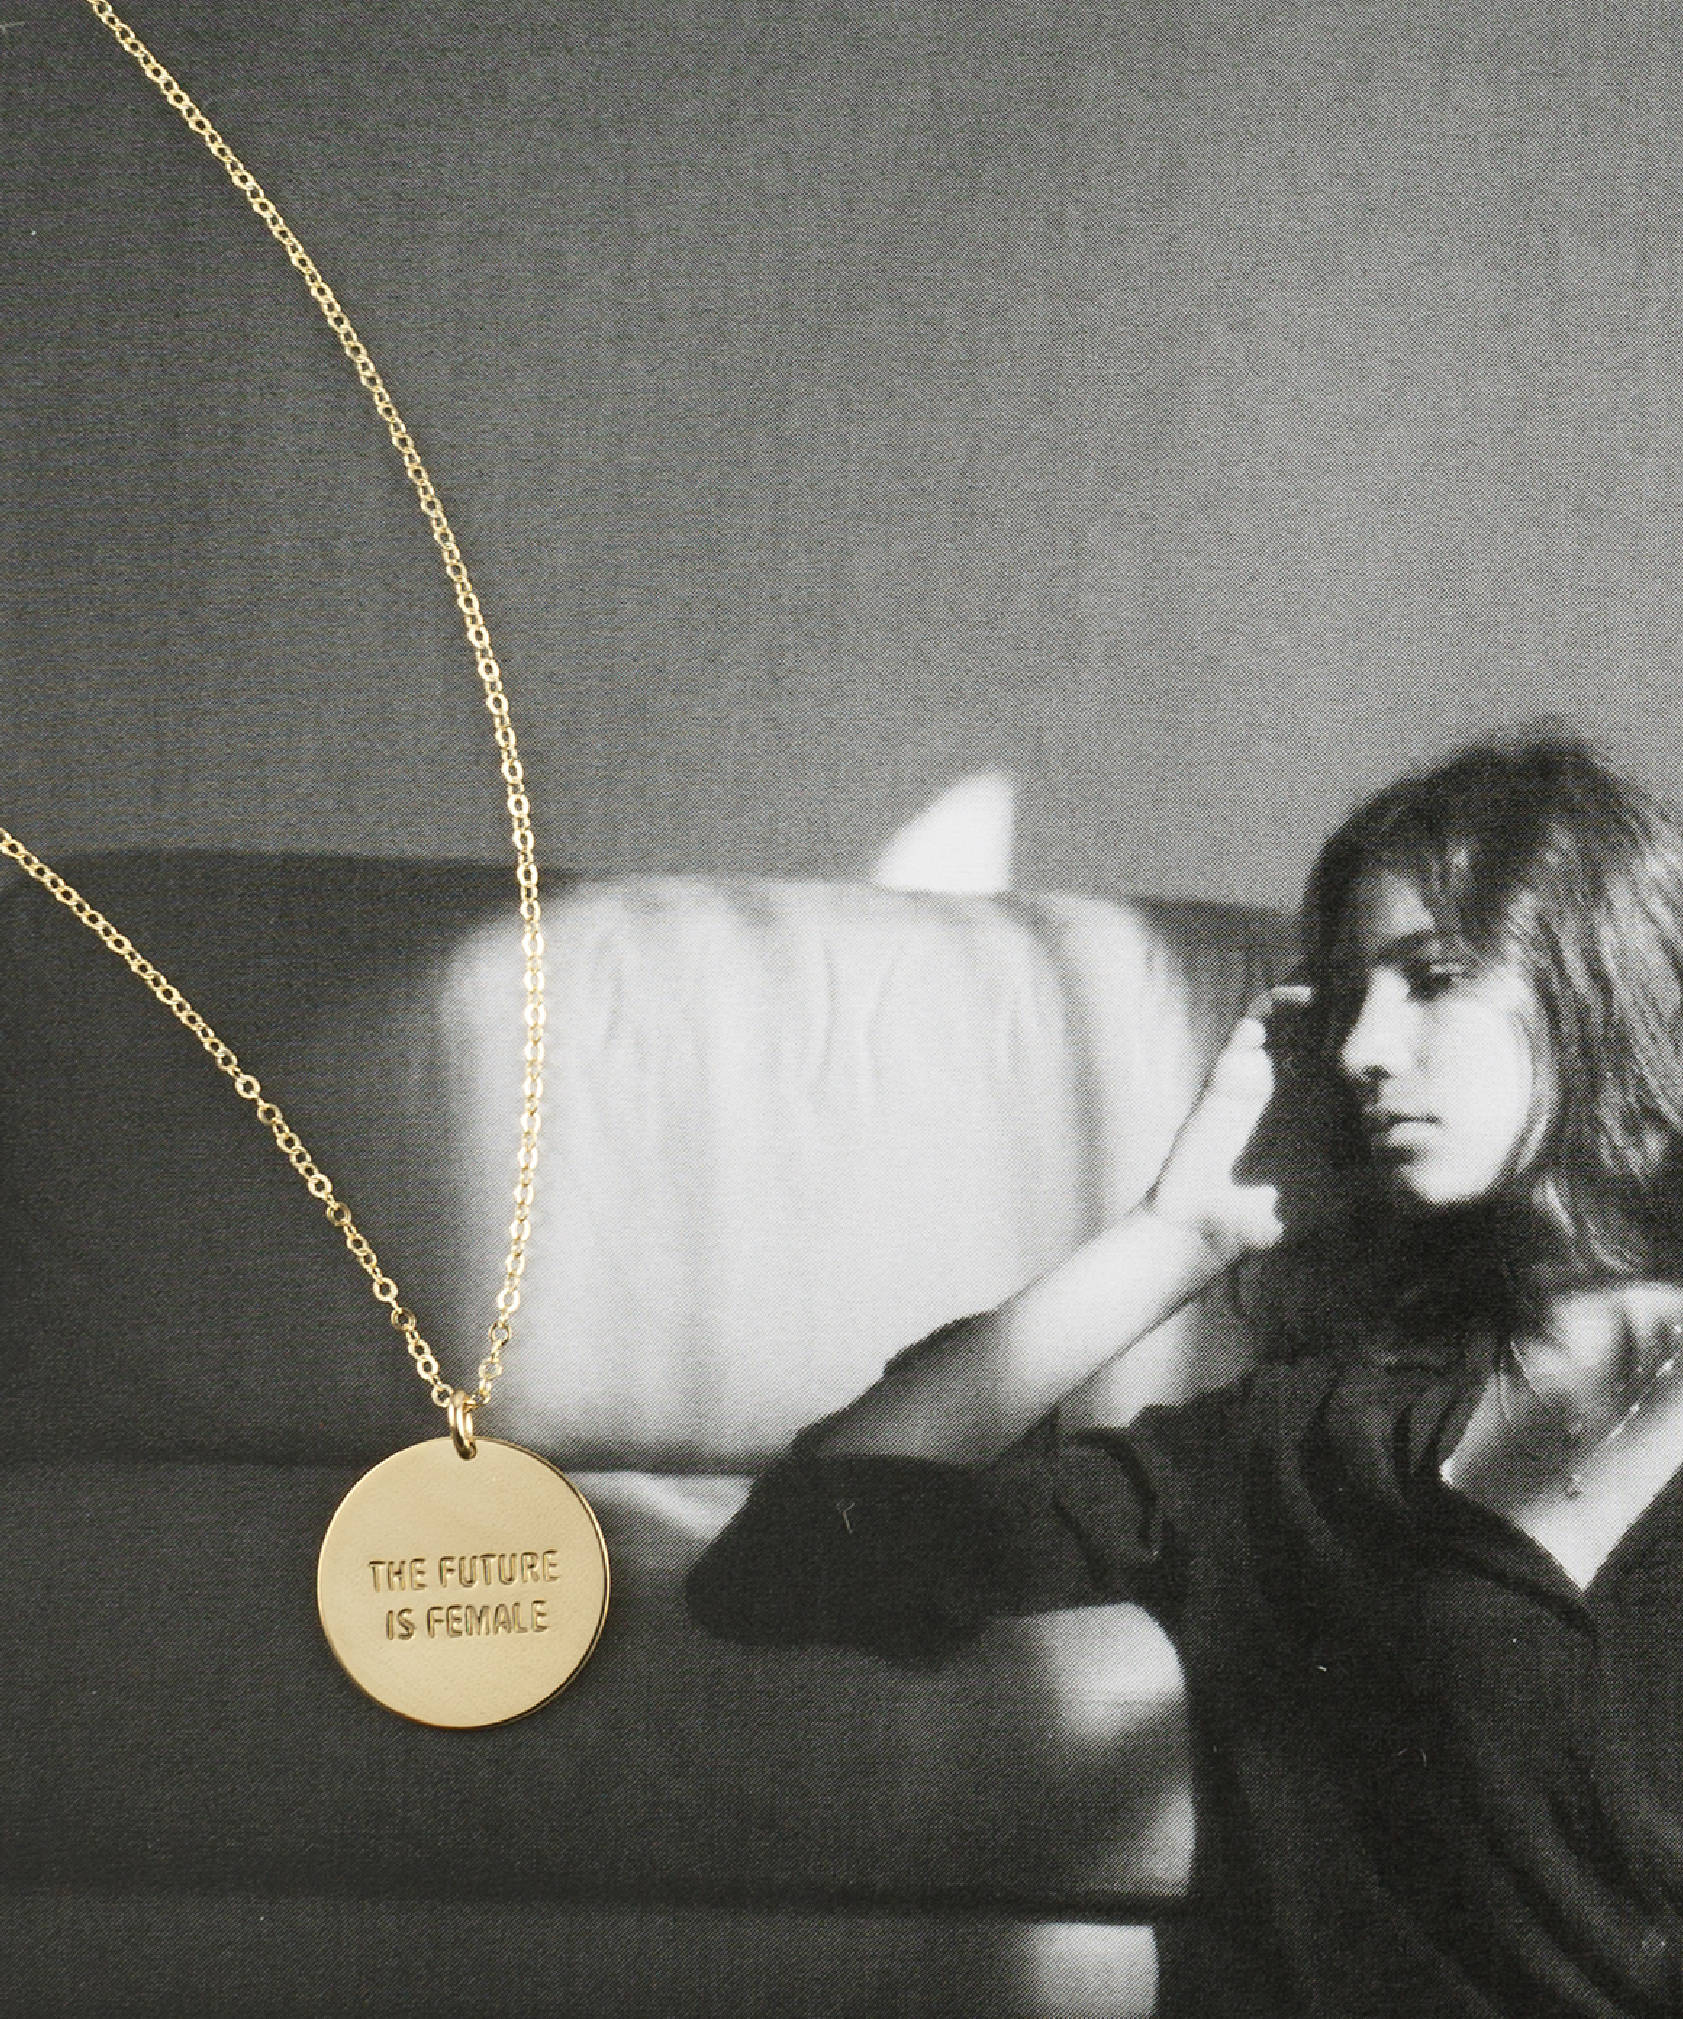 The Future is Female Disk Necklace